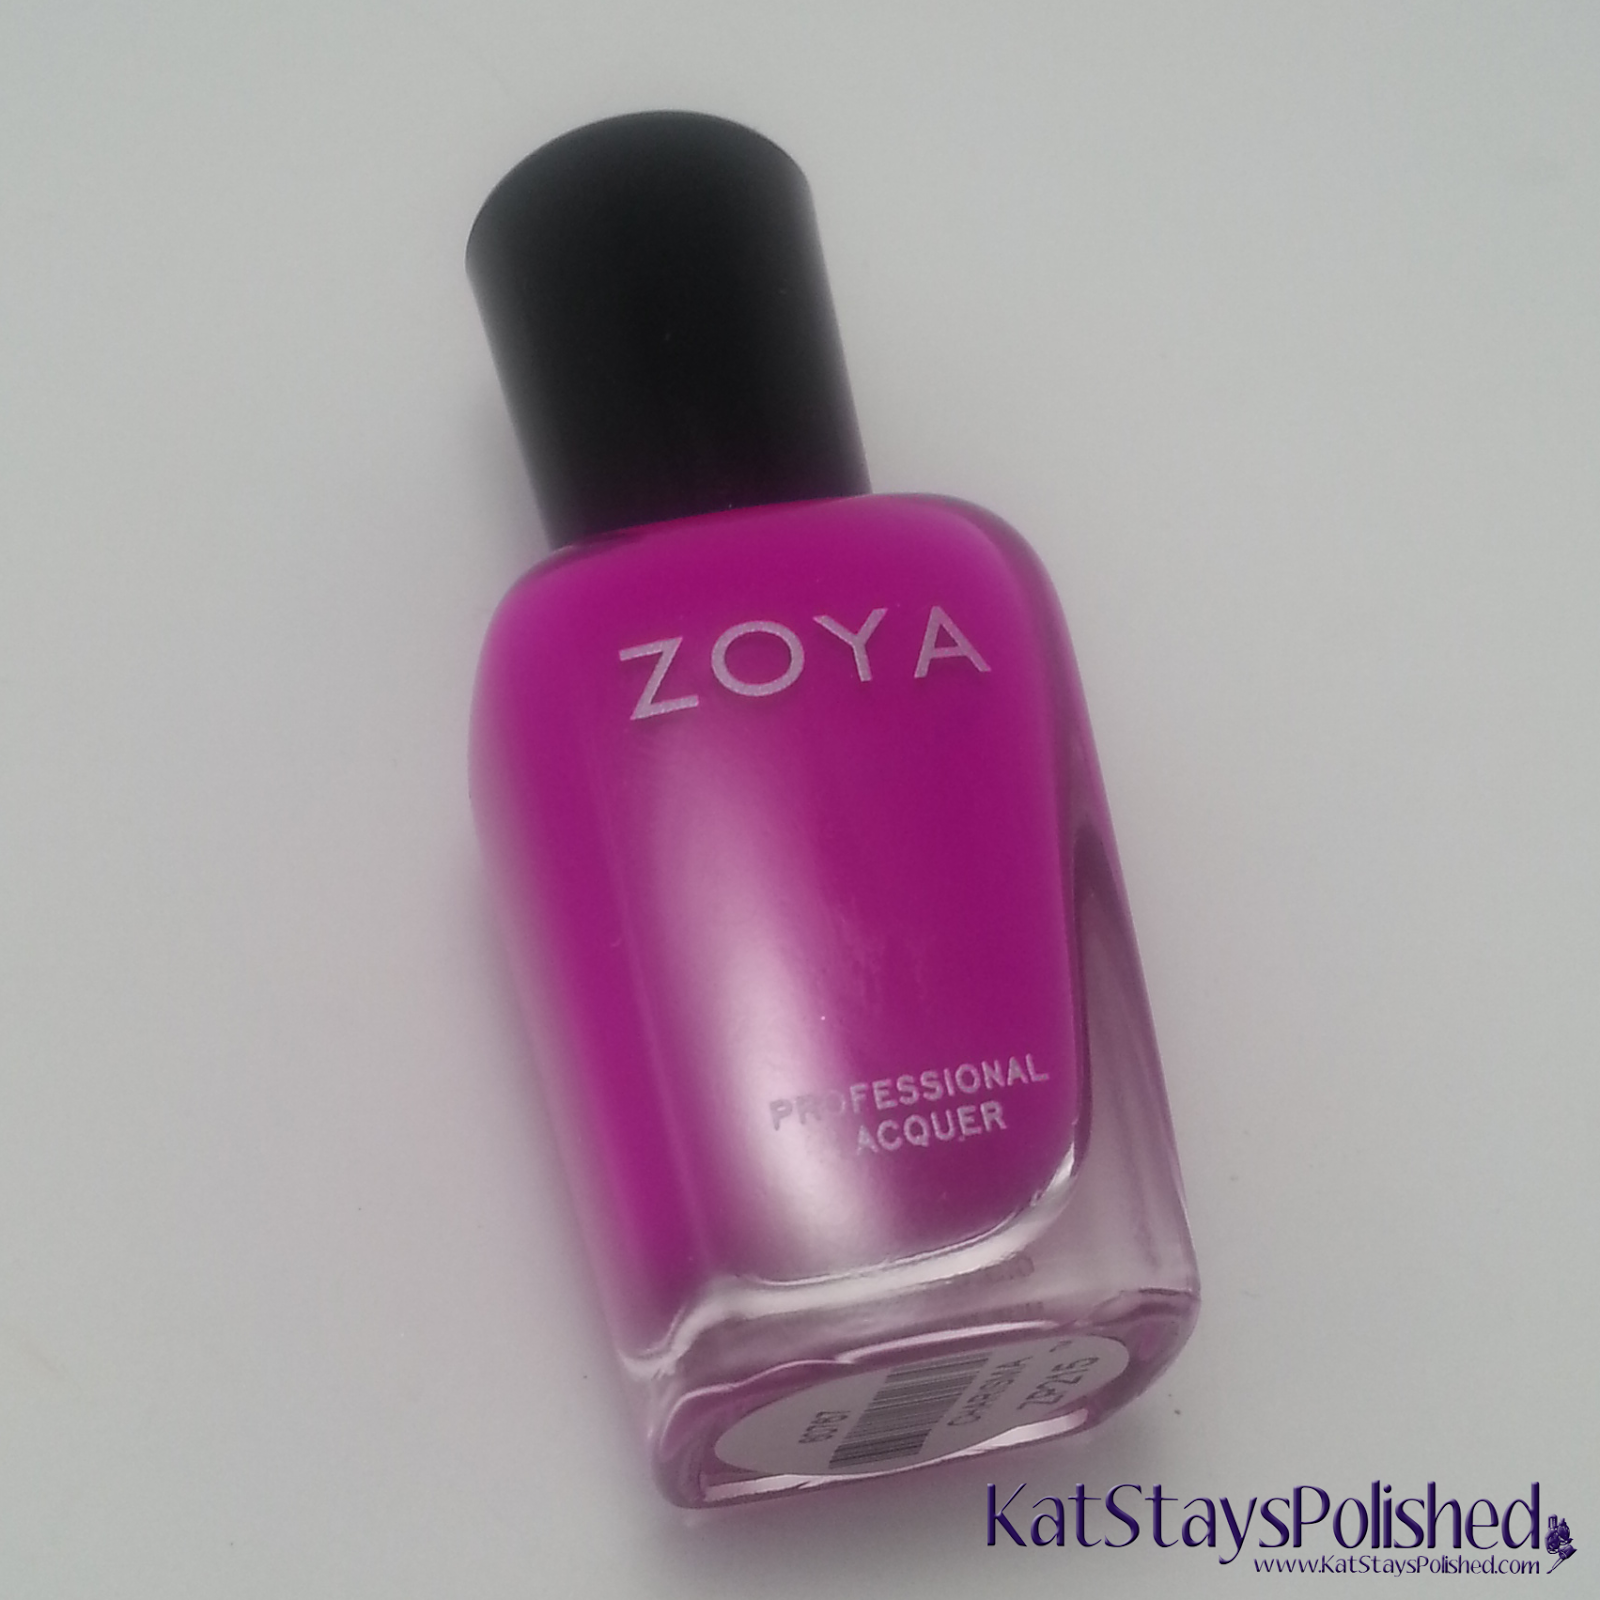 Prize from ColorSutraa: Zoya Charisma | Kat Stays Polished